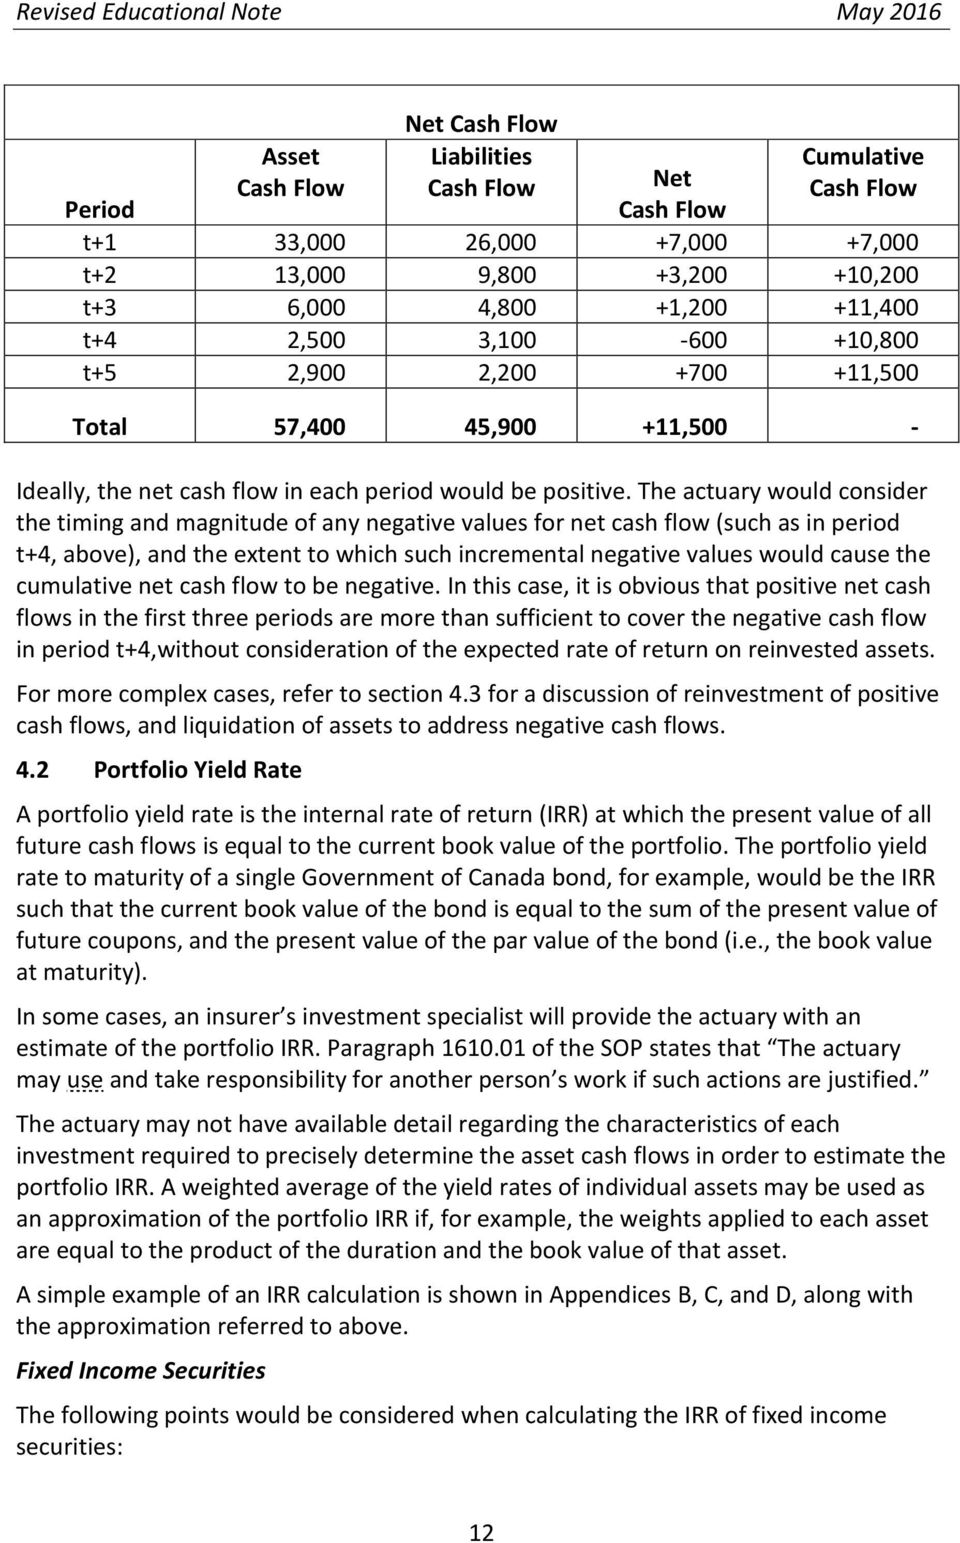 The actuary would consider the timing and magnitude of any negative values for net cash flow (such as in period t+4, above), and the extent to which such incremental negative values would cause the